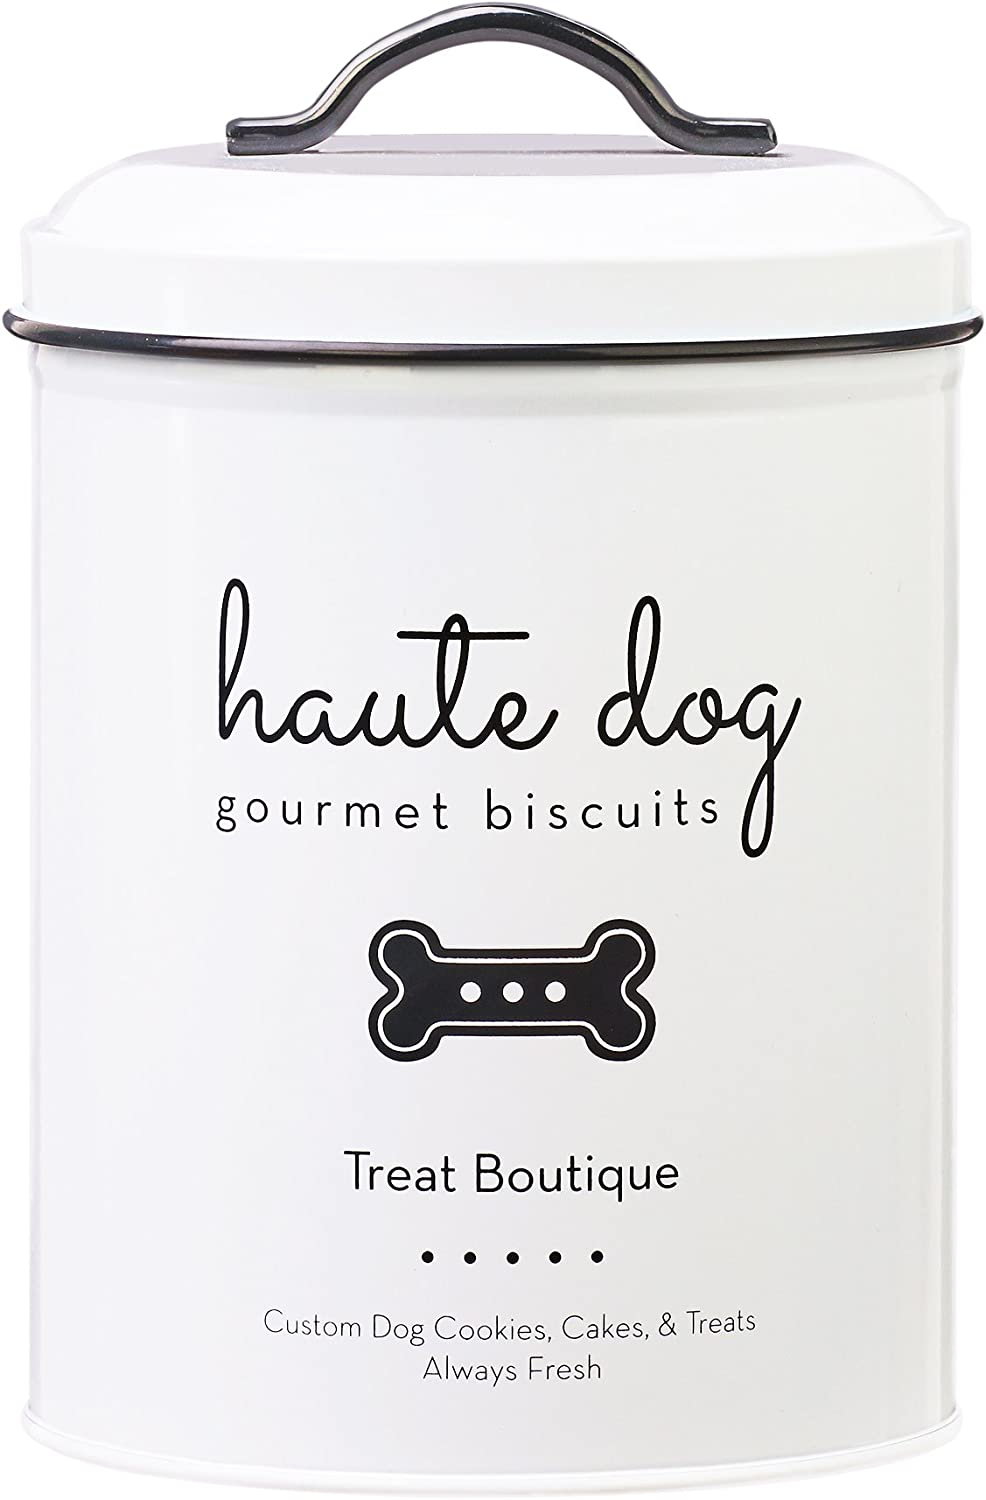 Amici Pet A7CDI013R Haute Dog Gourmet Biscuits Metal Storage Canister, Food Safe, Push Top Lid, 72 Fluid Ounce Capacity